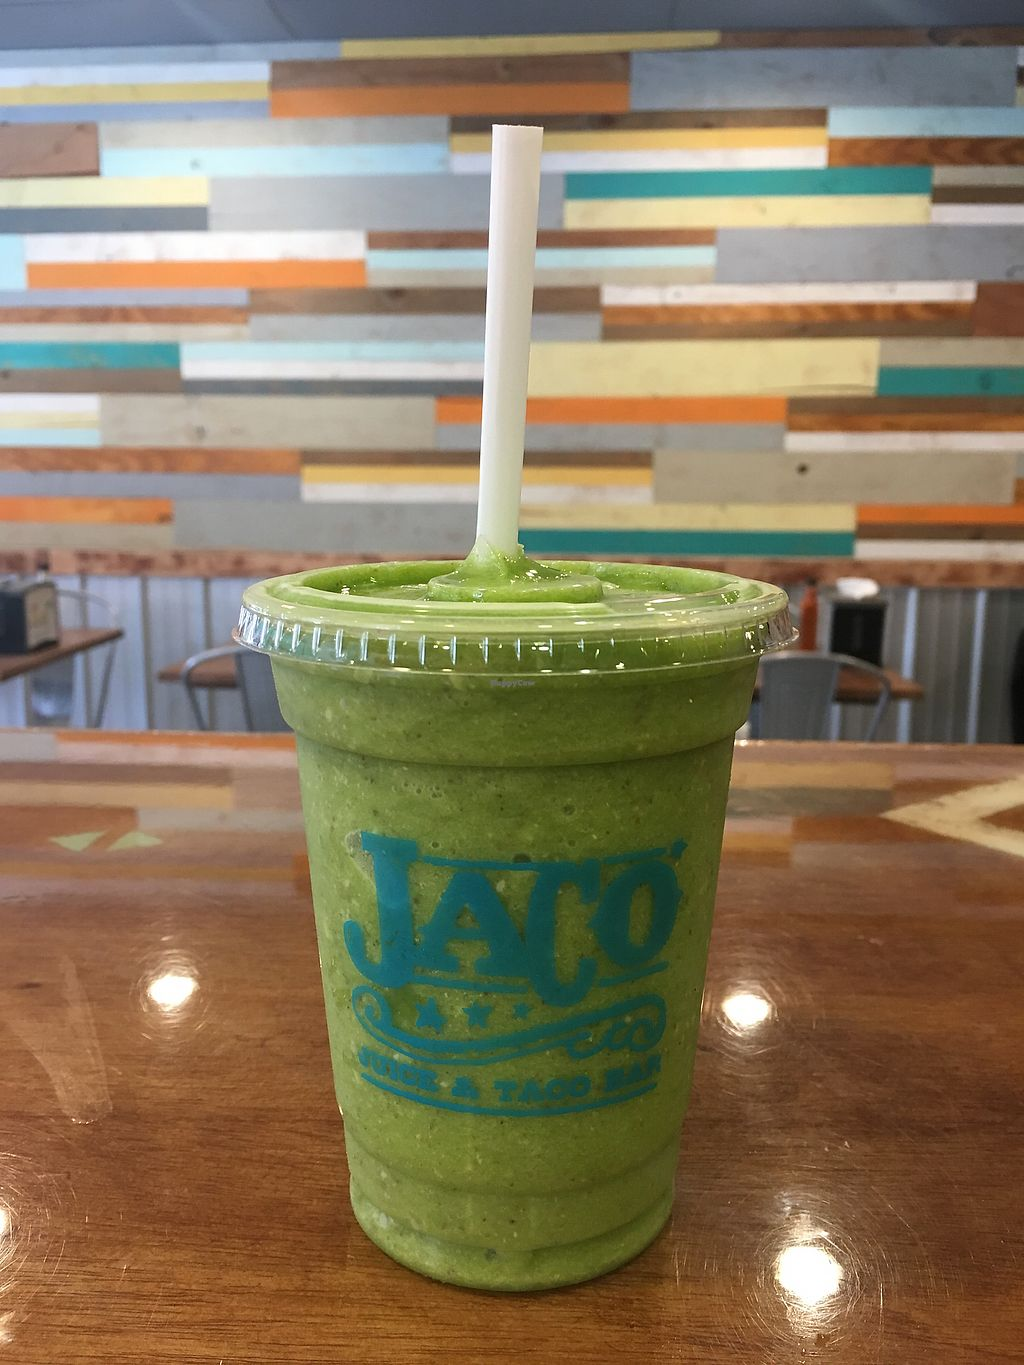 "Photo of Jaco Juice and Taco Bar  by <a href=""/members/profile/KnickelAllison"">KnickelAllison</a> <br/>Spinach Coolata smoothie! ( fresh spinach, pineapple, banana, chia, coconut  shavings and agave! ) <br/> February 9, 2018  - <a href='/contact/abuse/image/86050/357003'>Report</a>"